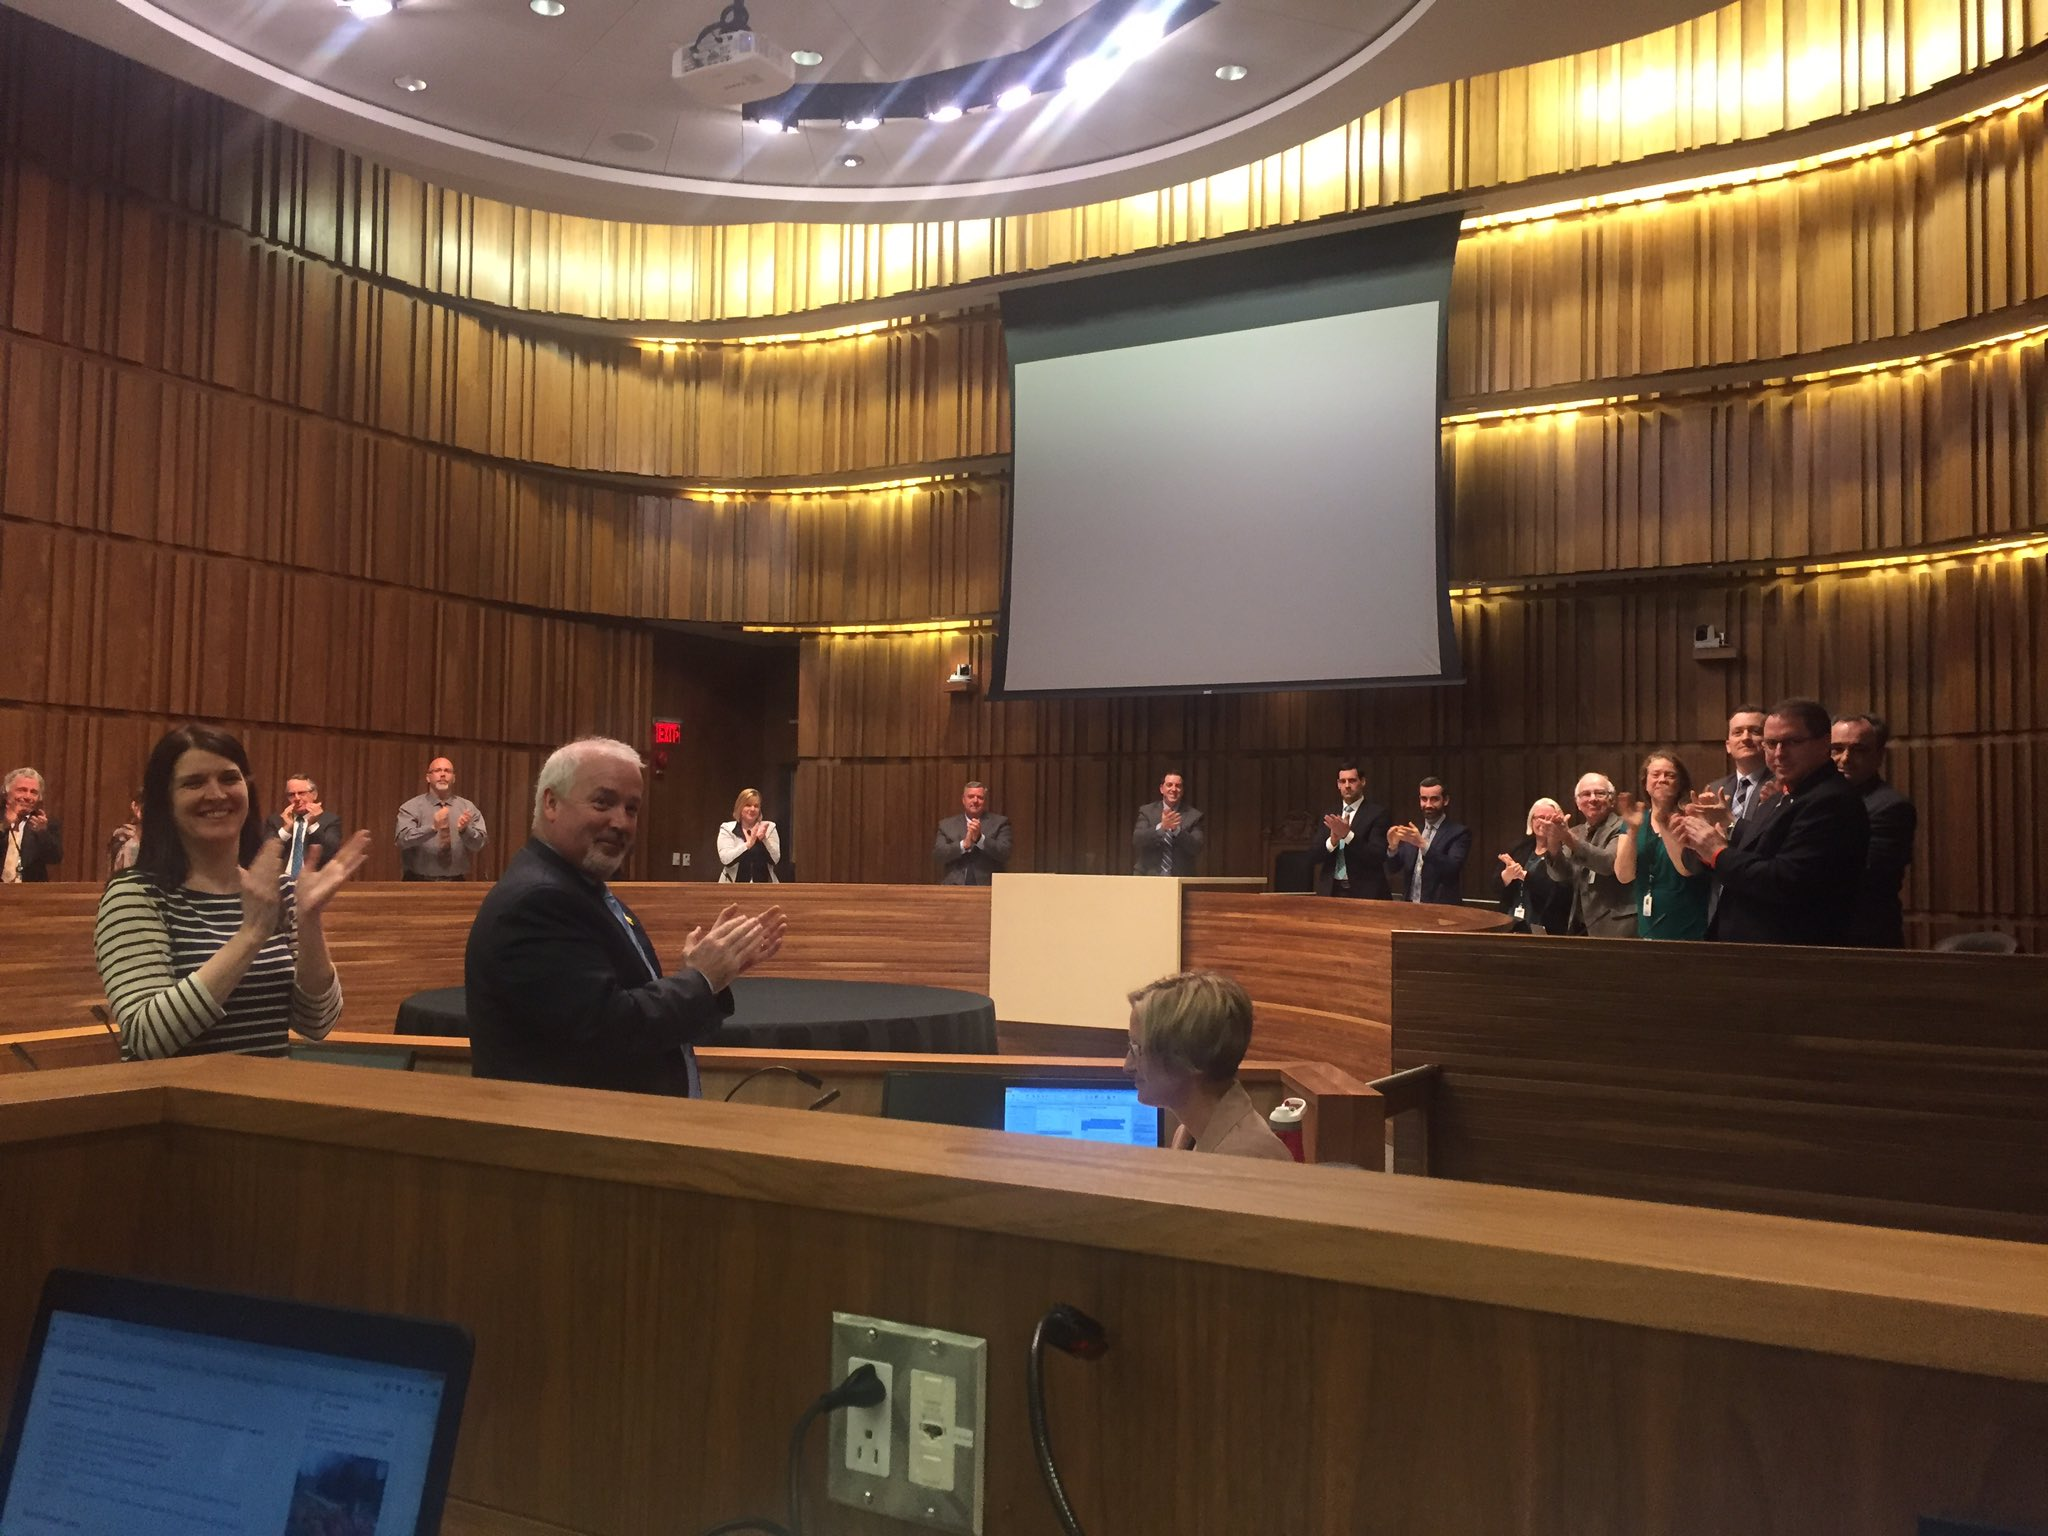 That's Guelph's city council giving a standing O to a journalist, the @MercuryTribune's Doug Hallett https://t.co/QG0Mpy2dGe